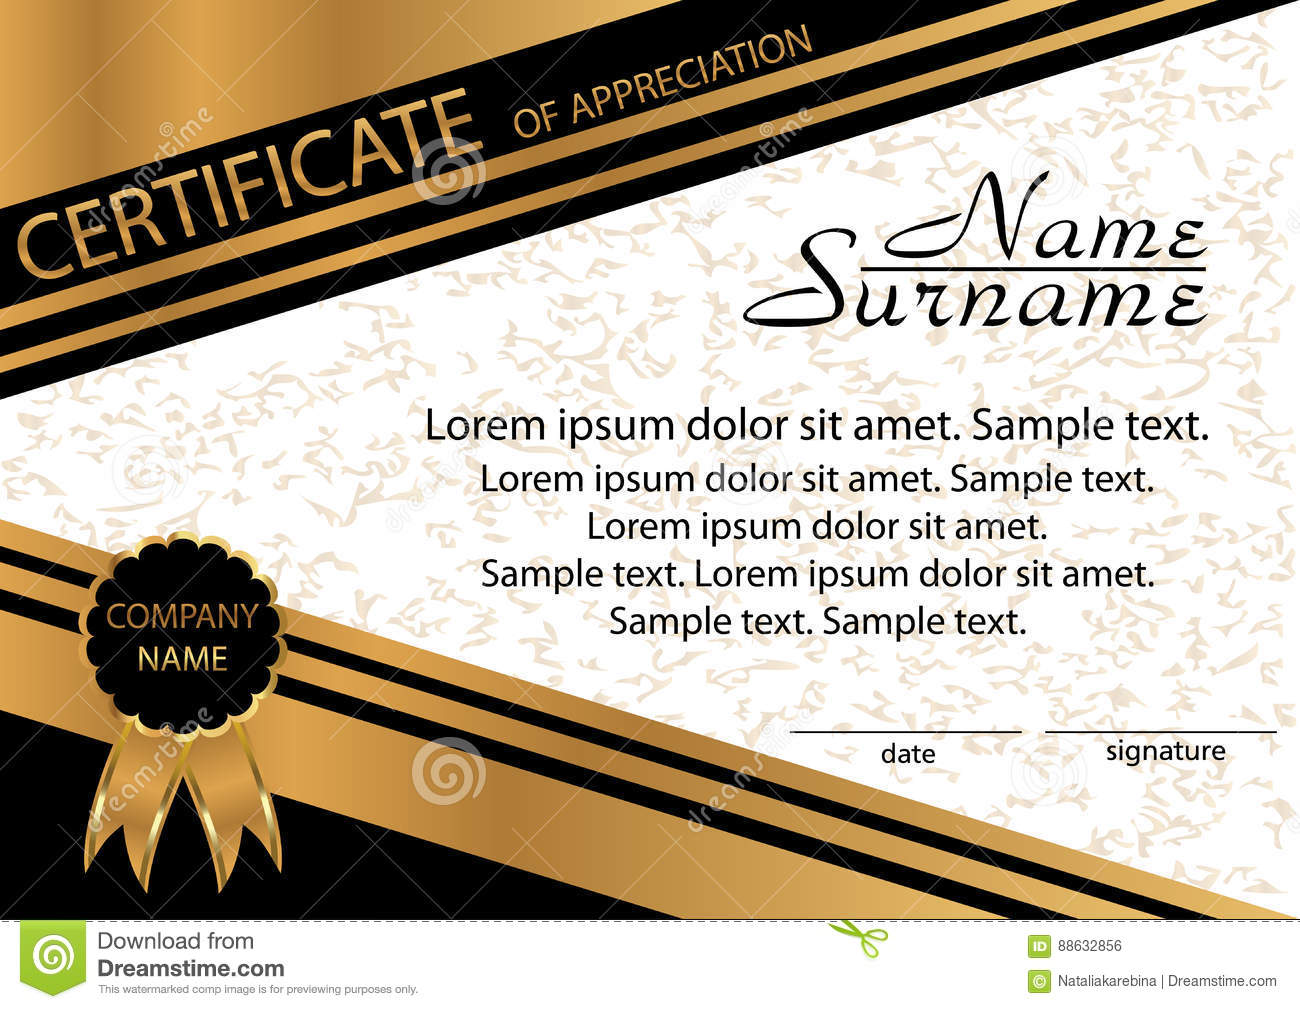 Gold and black template certificate of appreciation elegant bac gold and black template certificate of appreciation elegant bac yelopaper Choice Image